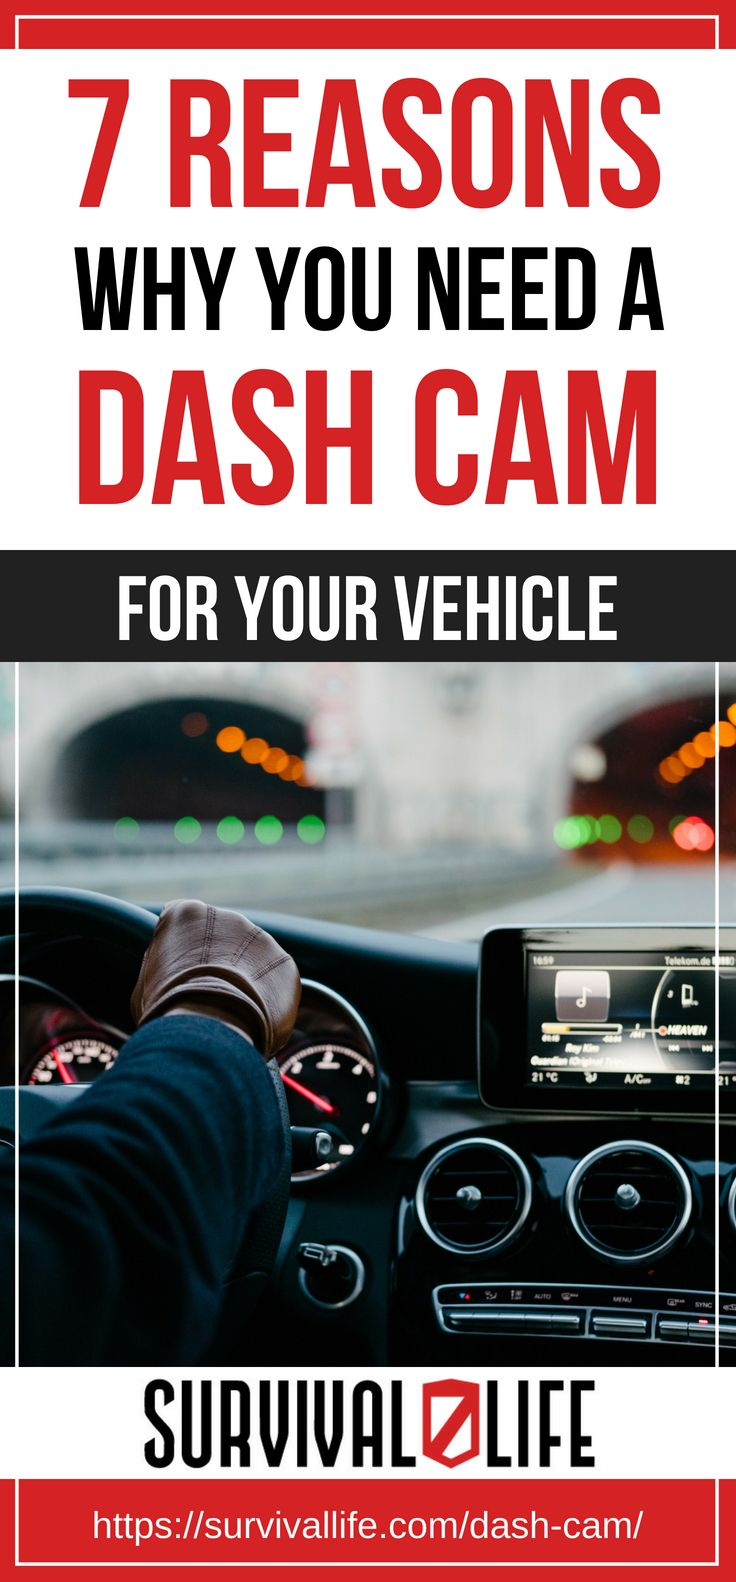 Placard | 7 Reasons Why You Need A Dash Cam For Your Vehicle